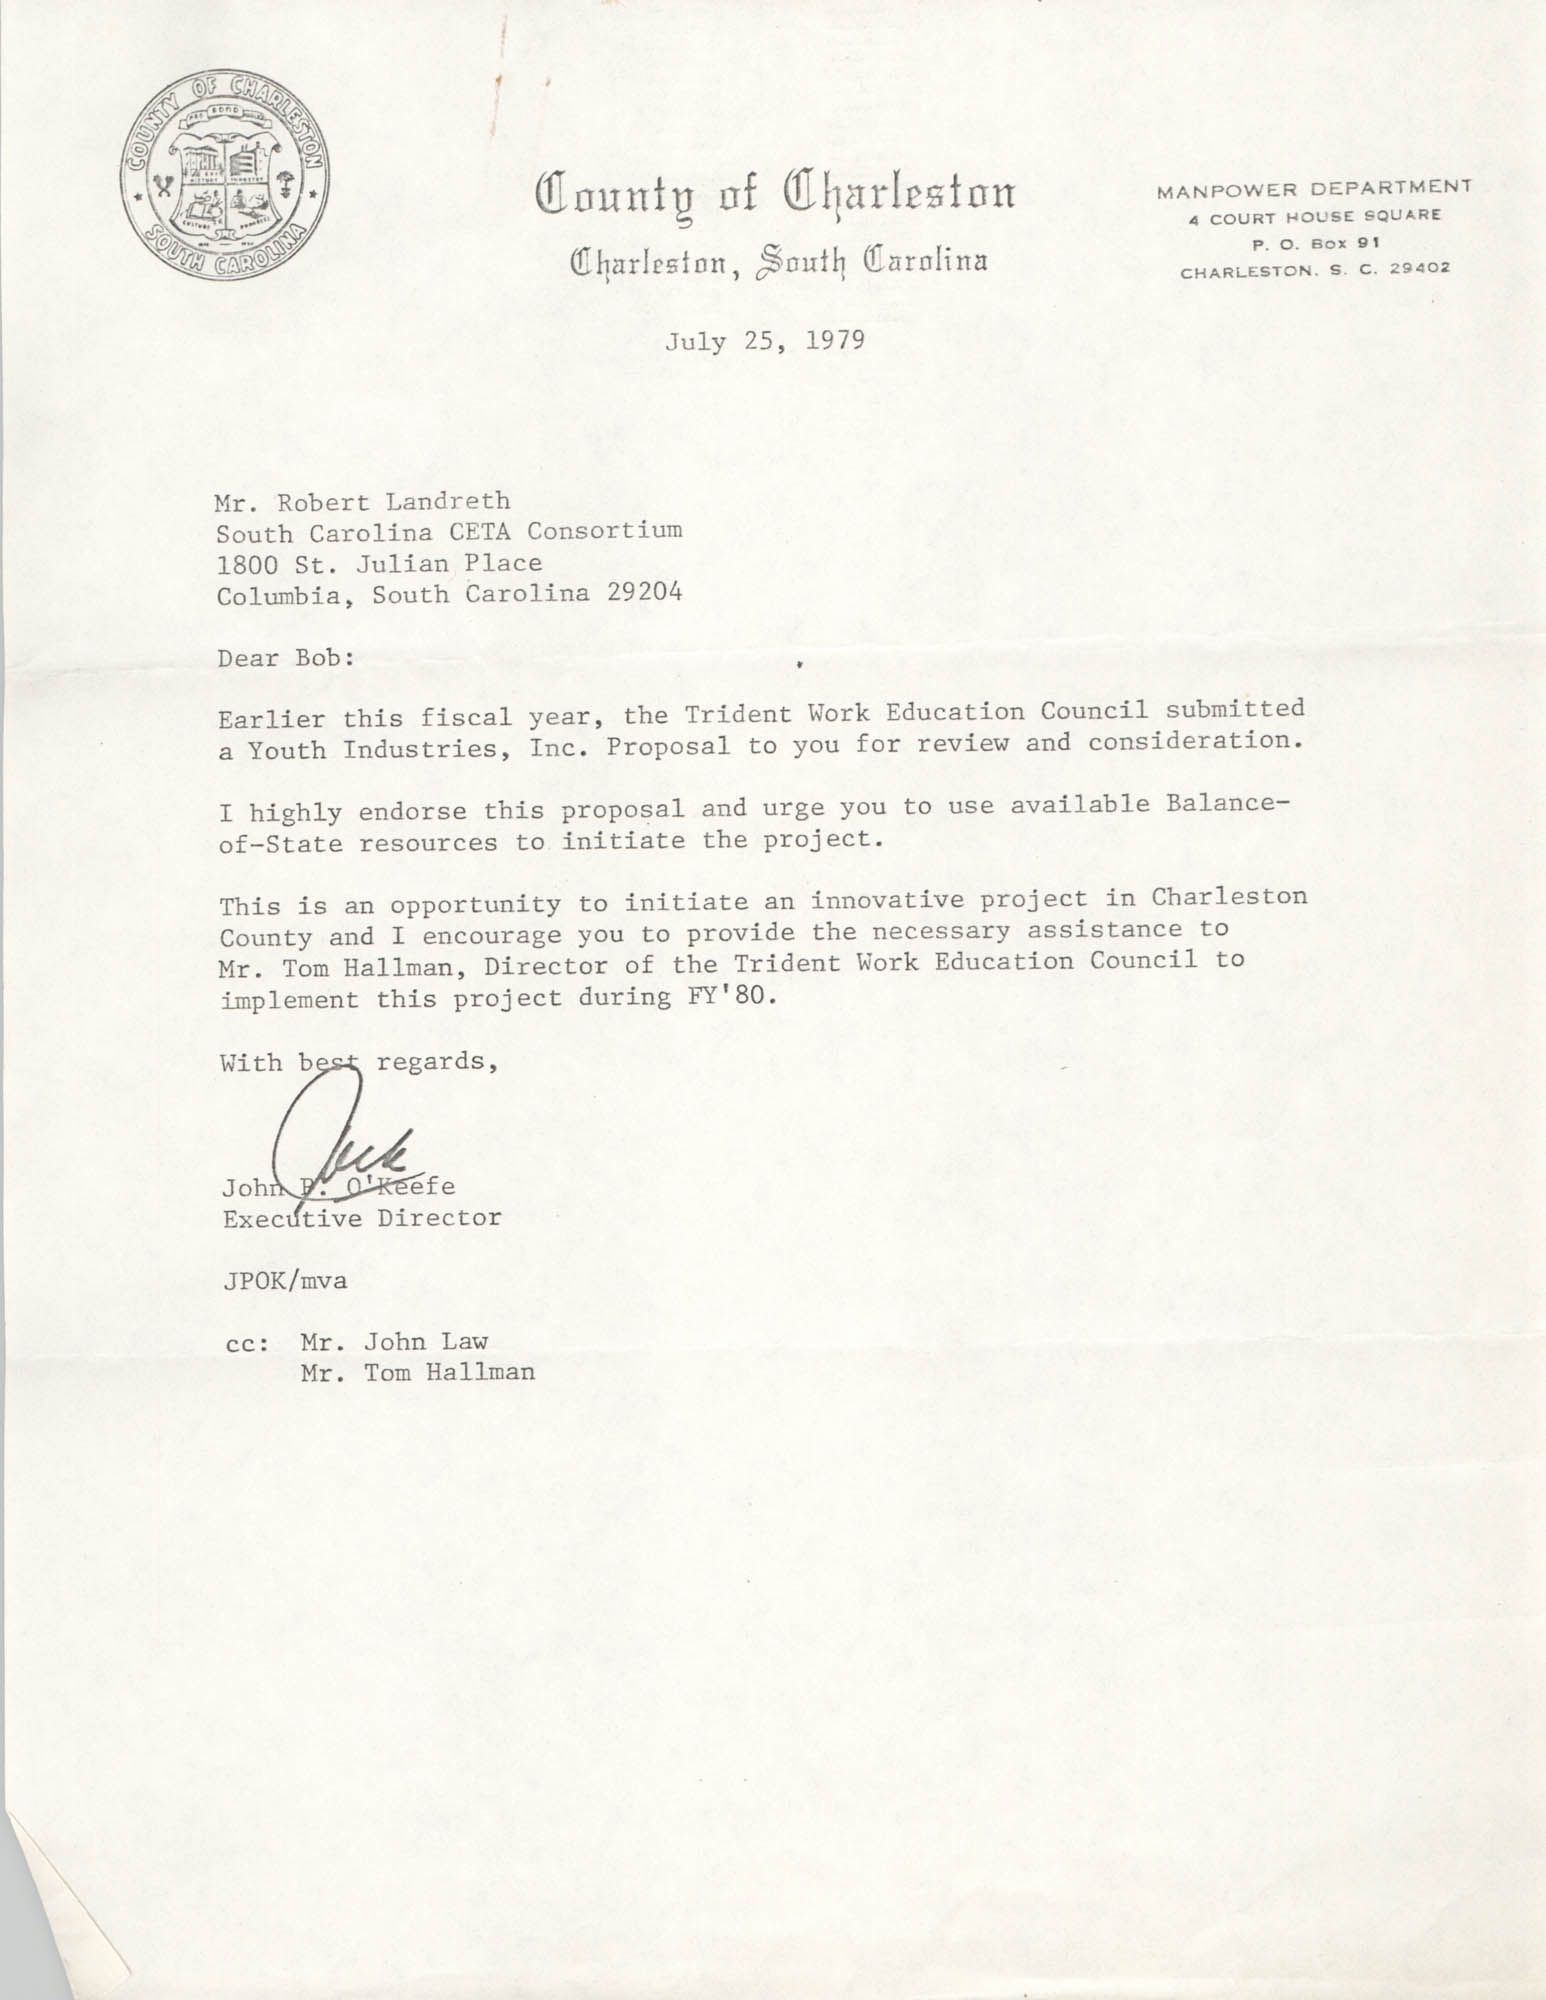 Letter from John P. O'Keefe to Robert Landreth, July 25, 1979